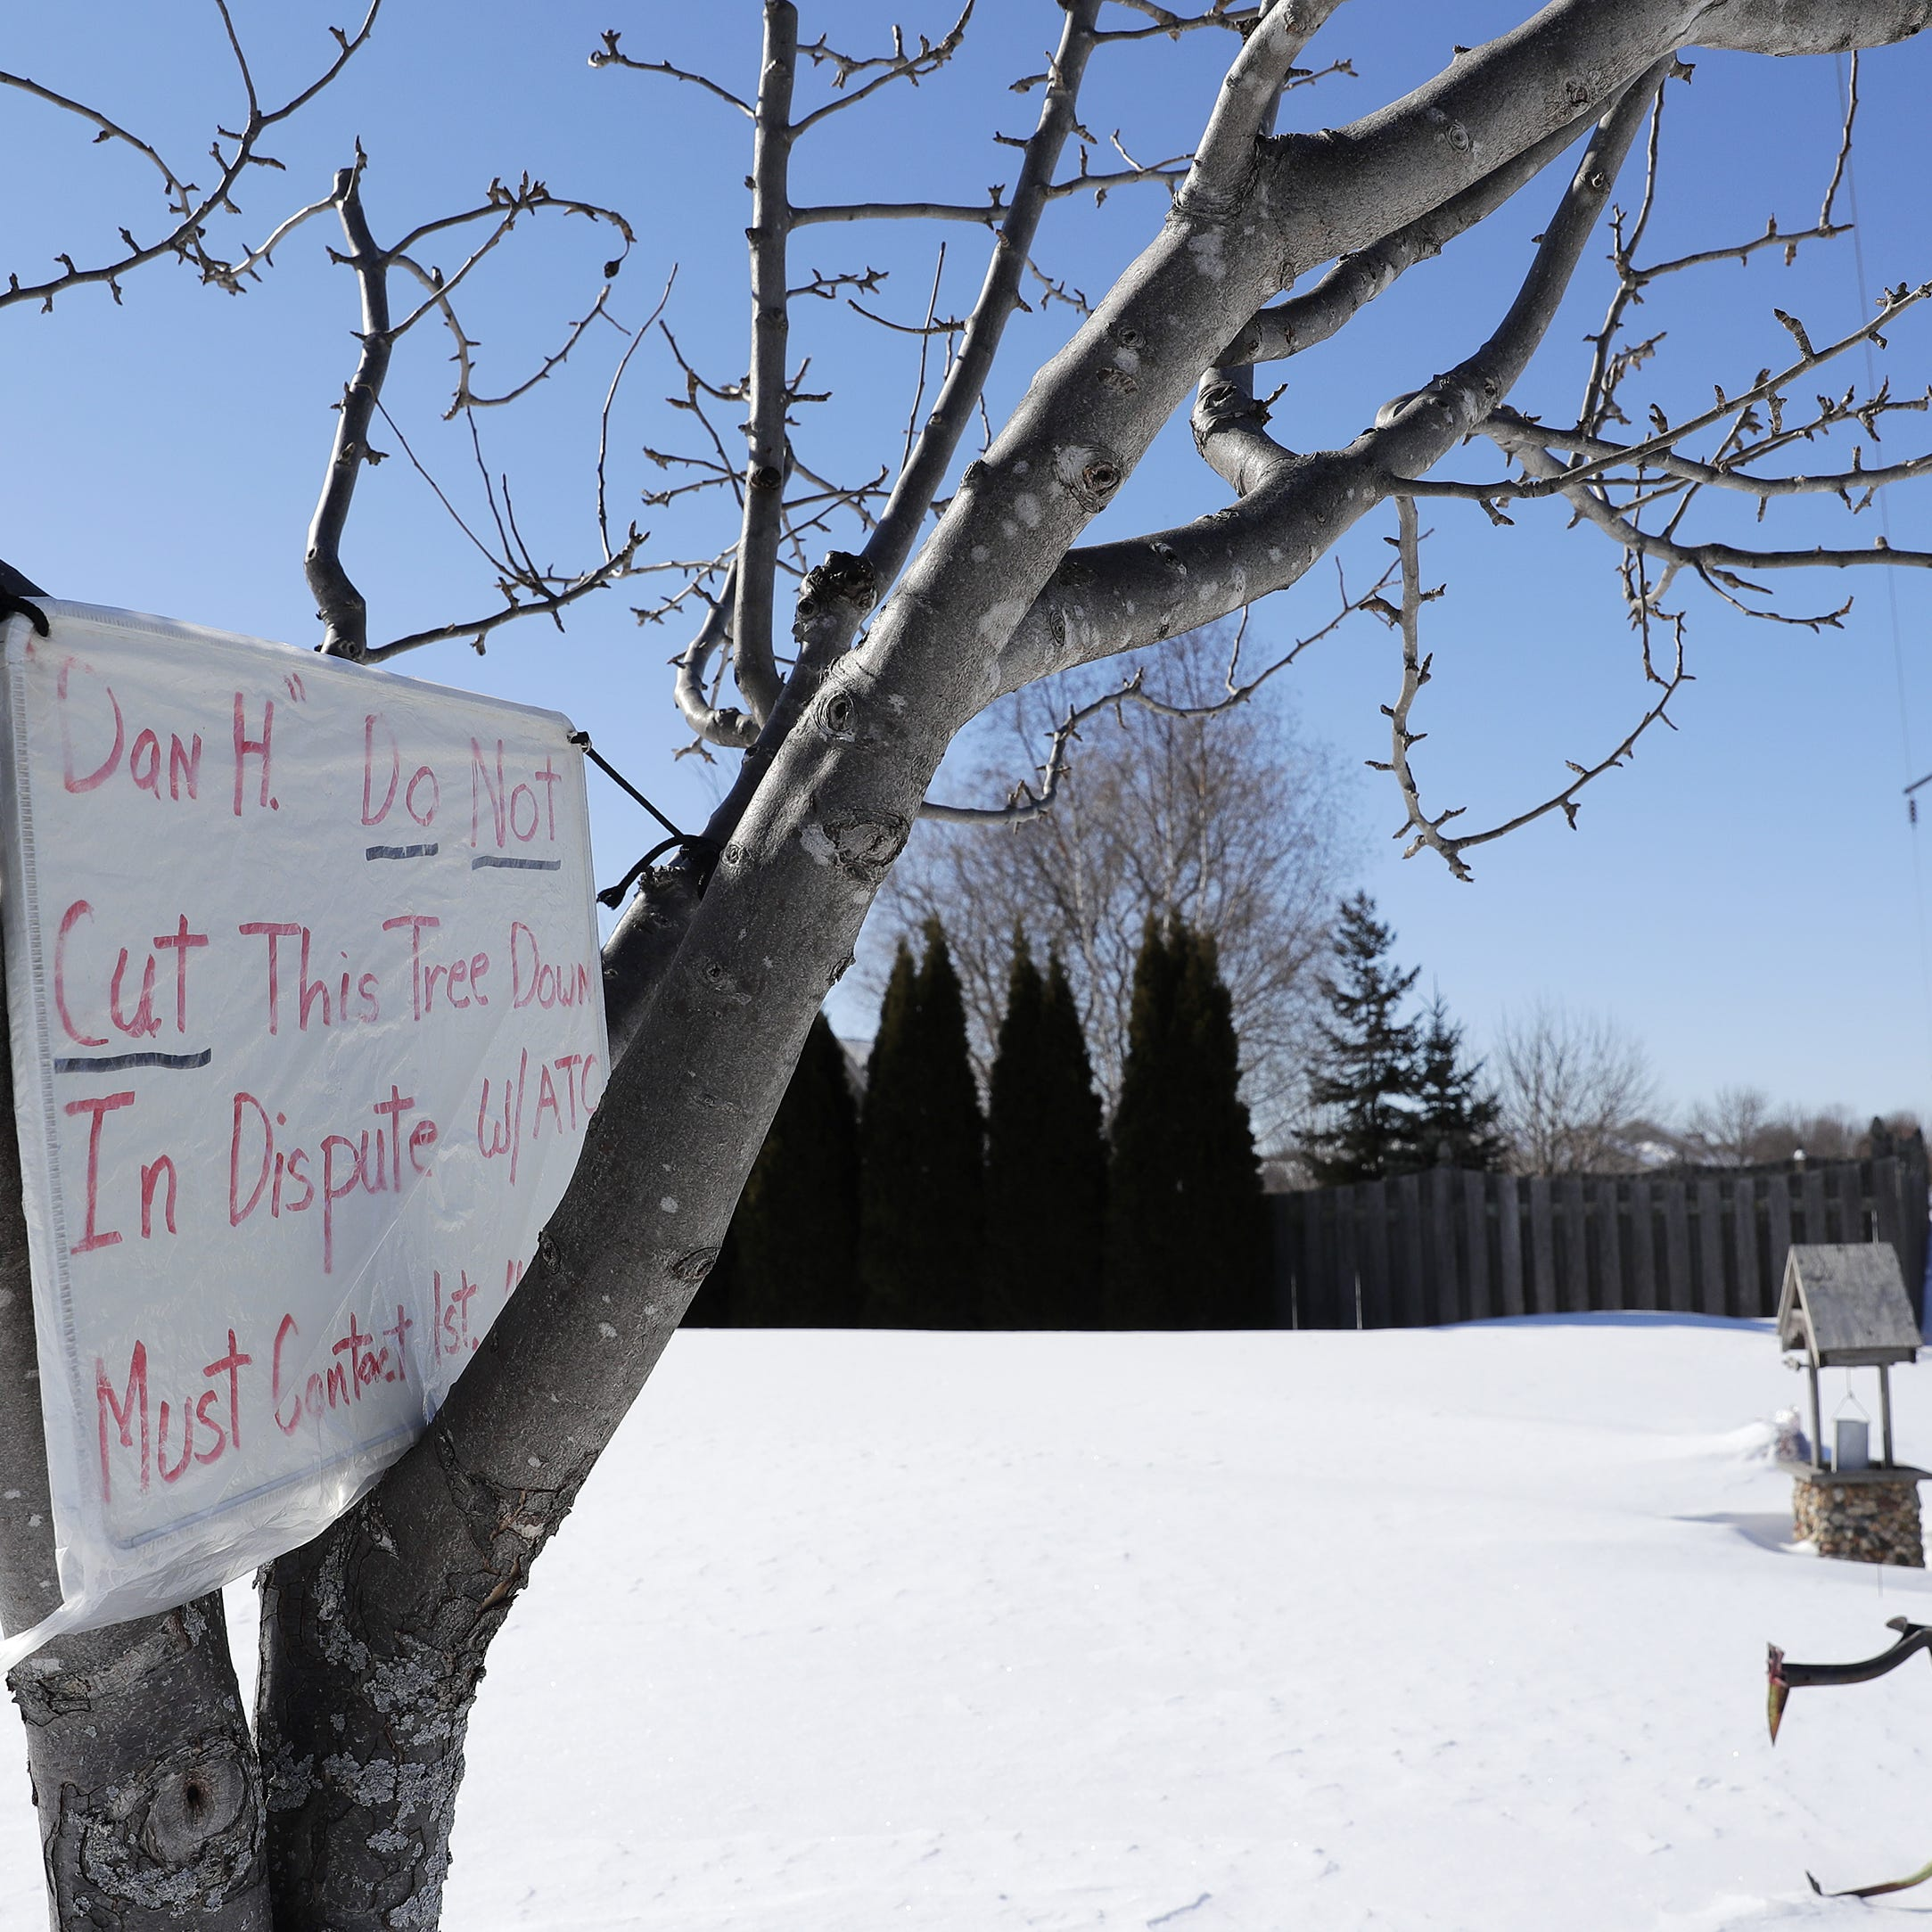 'They get to do what they want': Green Bay residents fight power company to save trees